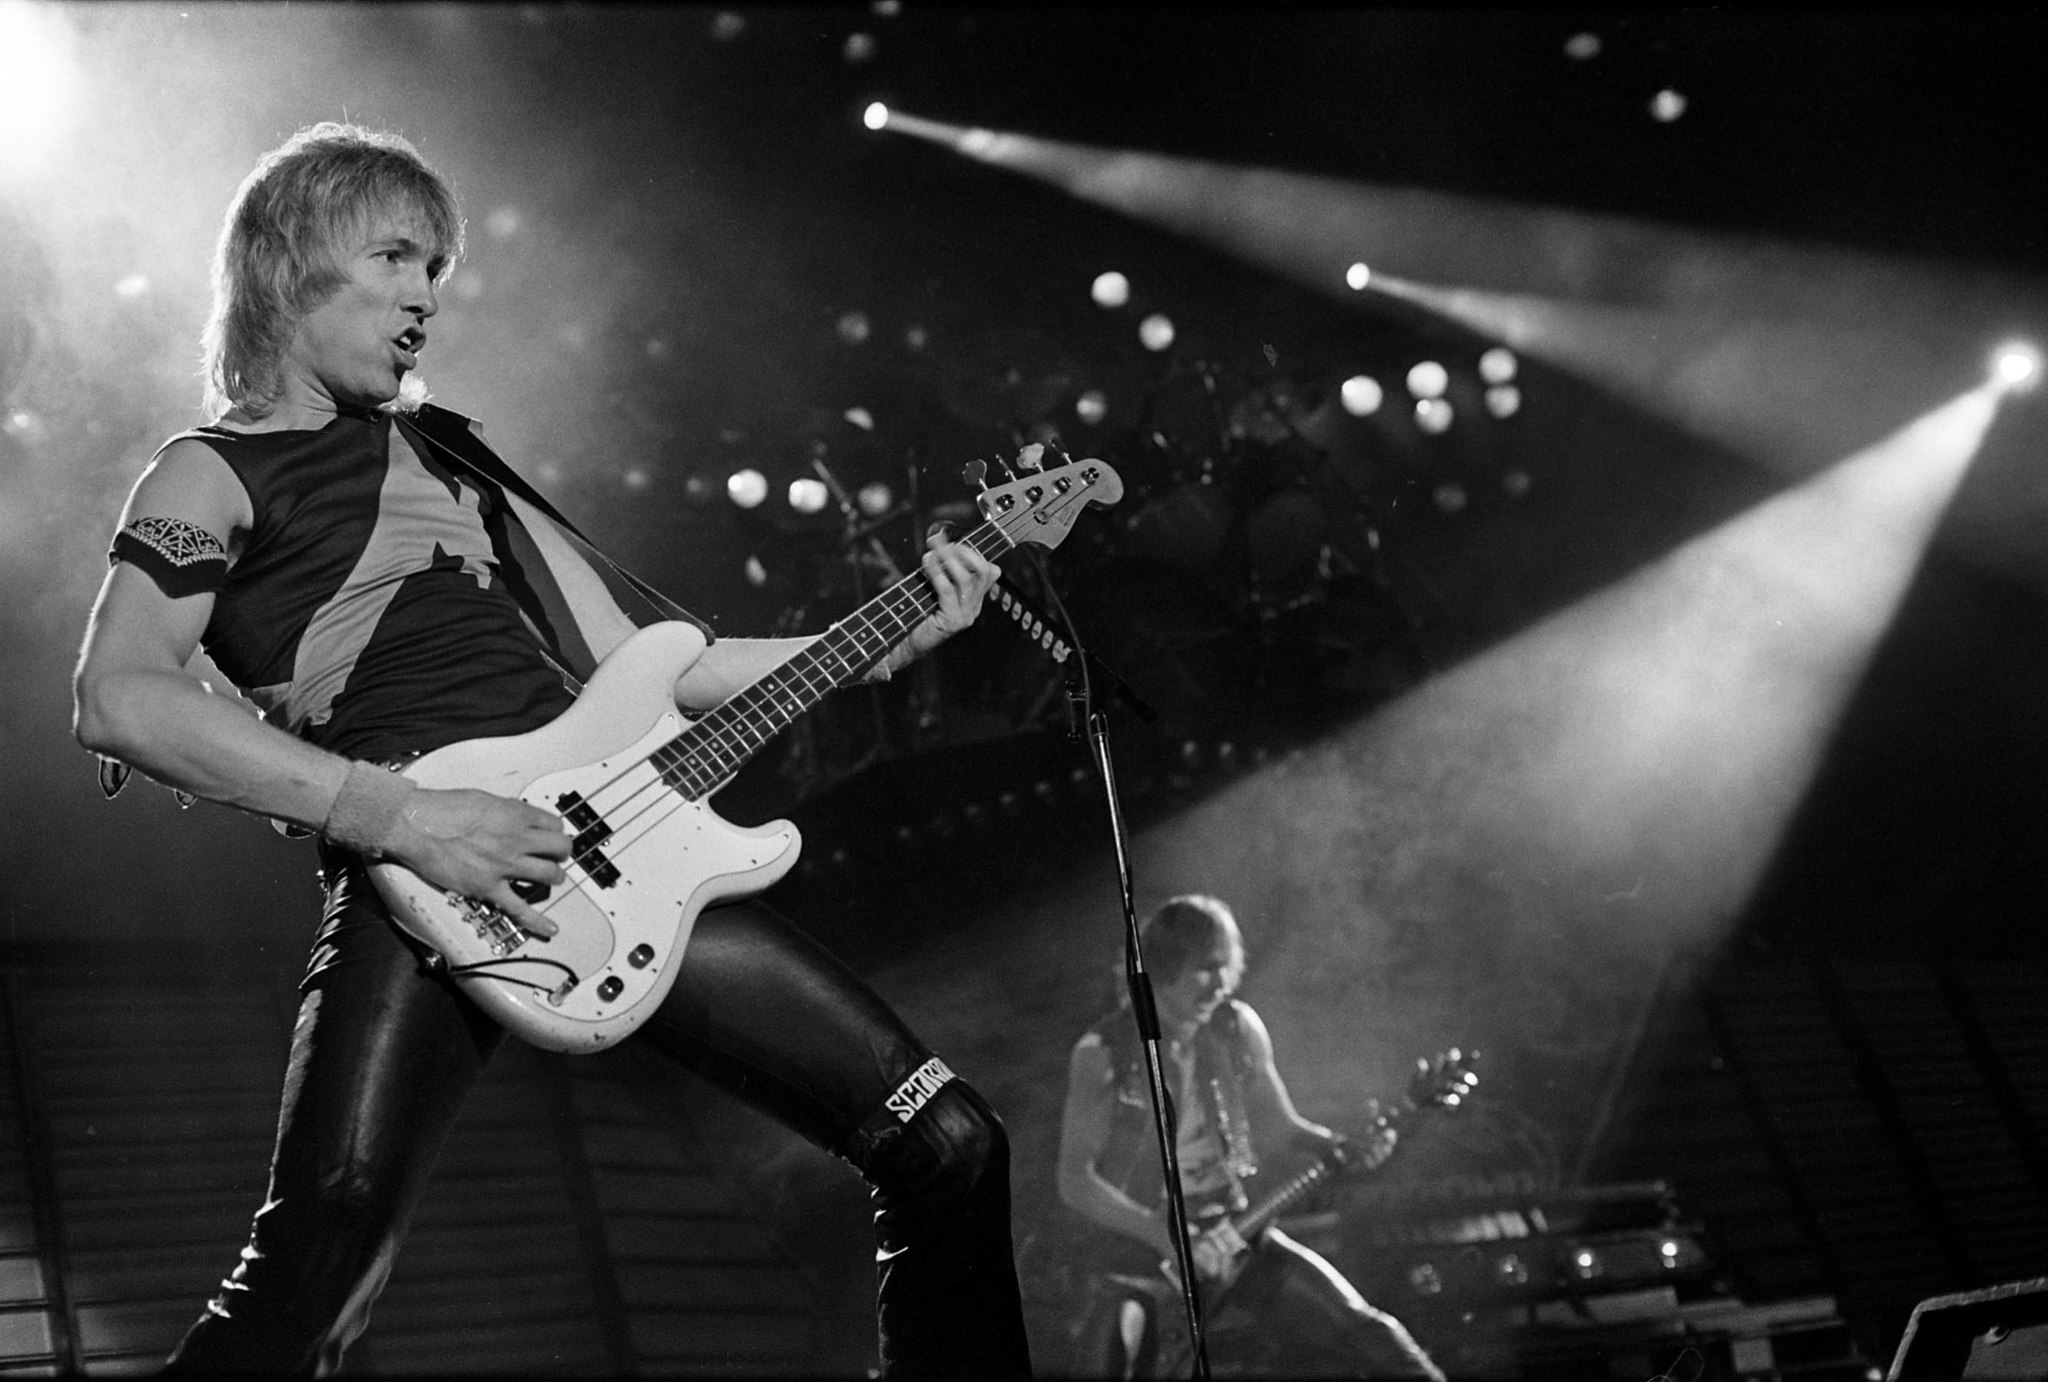 April 24, 1984: The Scorpions' bass player Francis Buchholz during concert at the Forum. This image